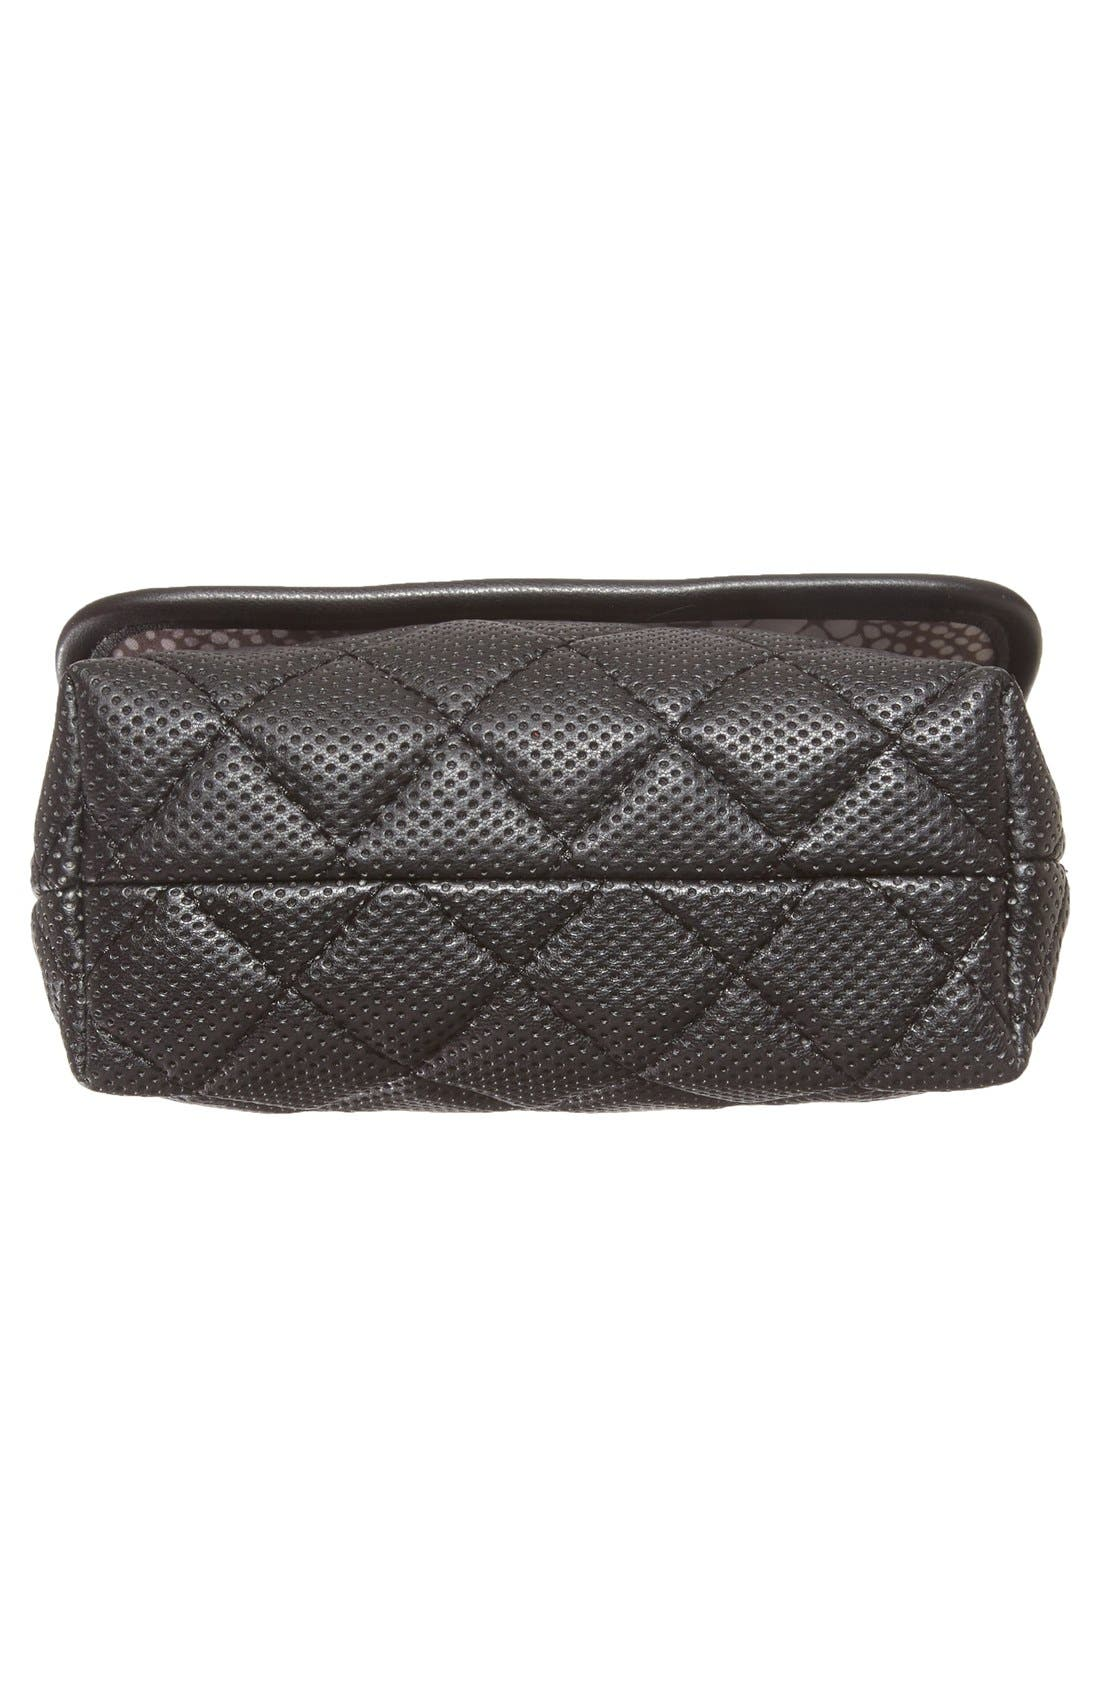 Alternate Image 5  - Steve Madden 'B Clarre' Perforated & Quilted Faux Leather Crossbody Bag